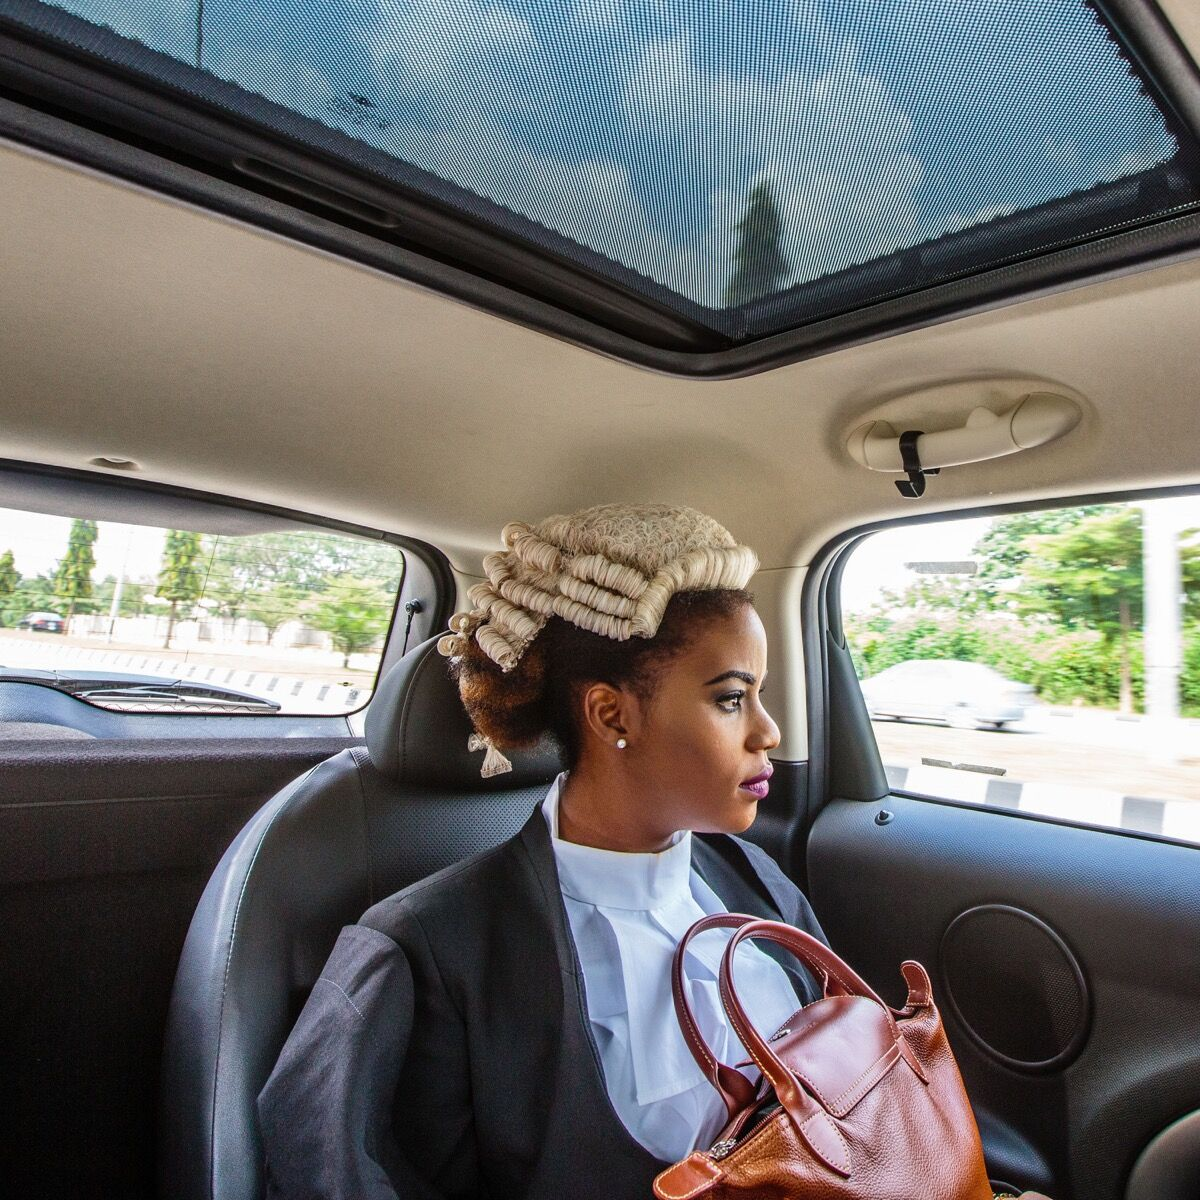 Ginika is on her way to join thousands of Nigerian law graduates being called to the bar in Abuja, Nigeria. Photo by @tomsaater.